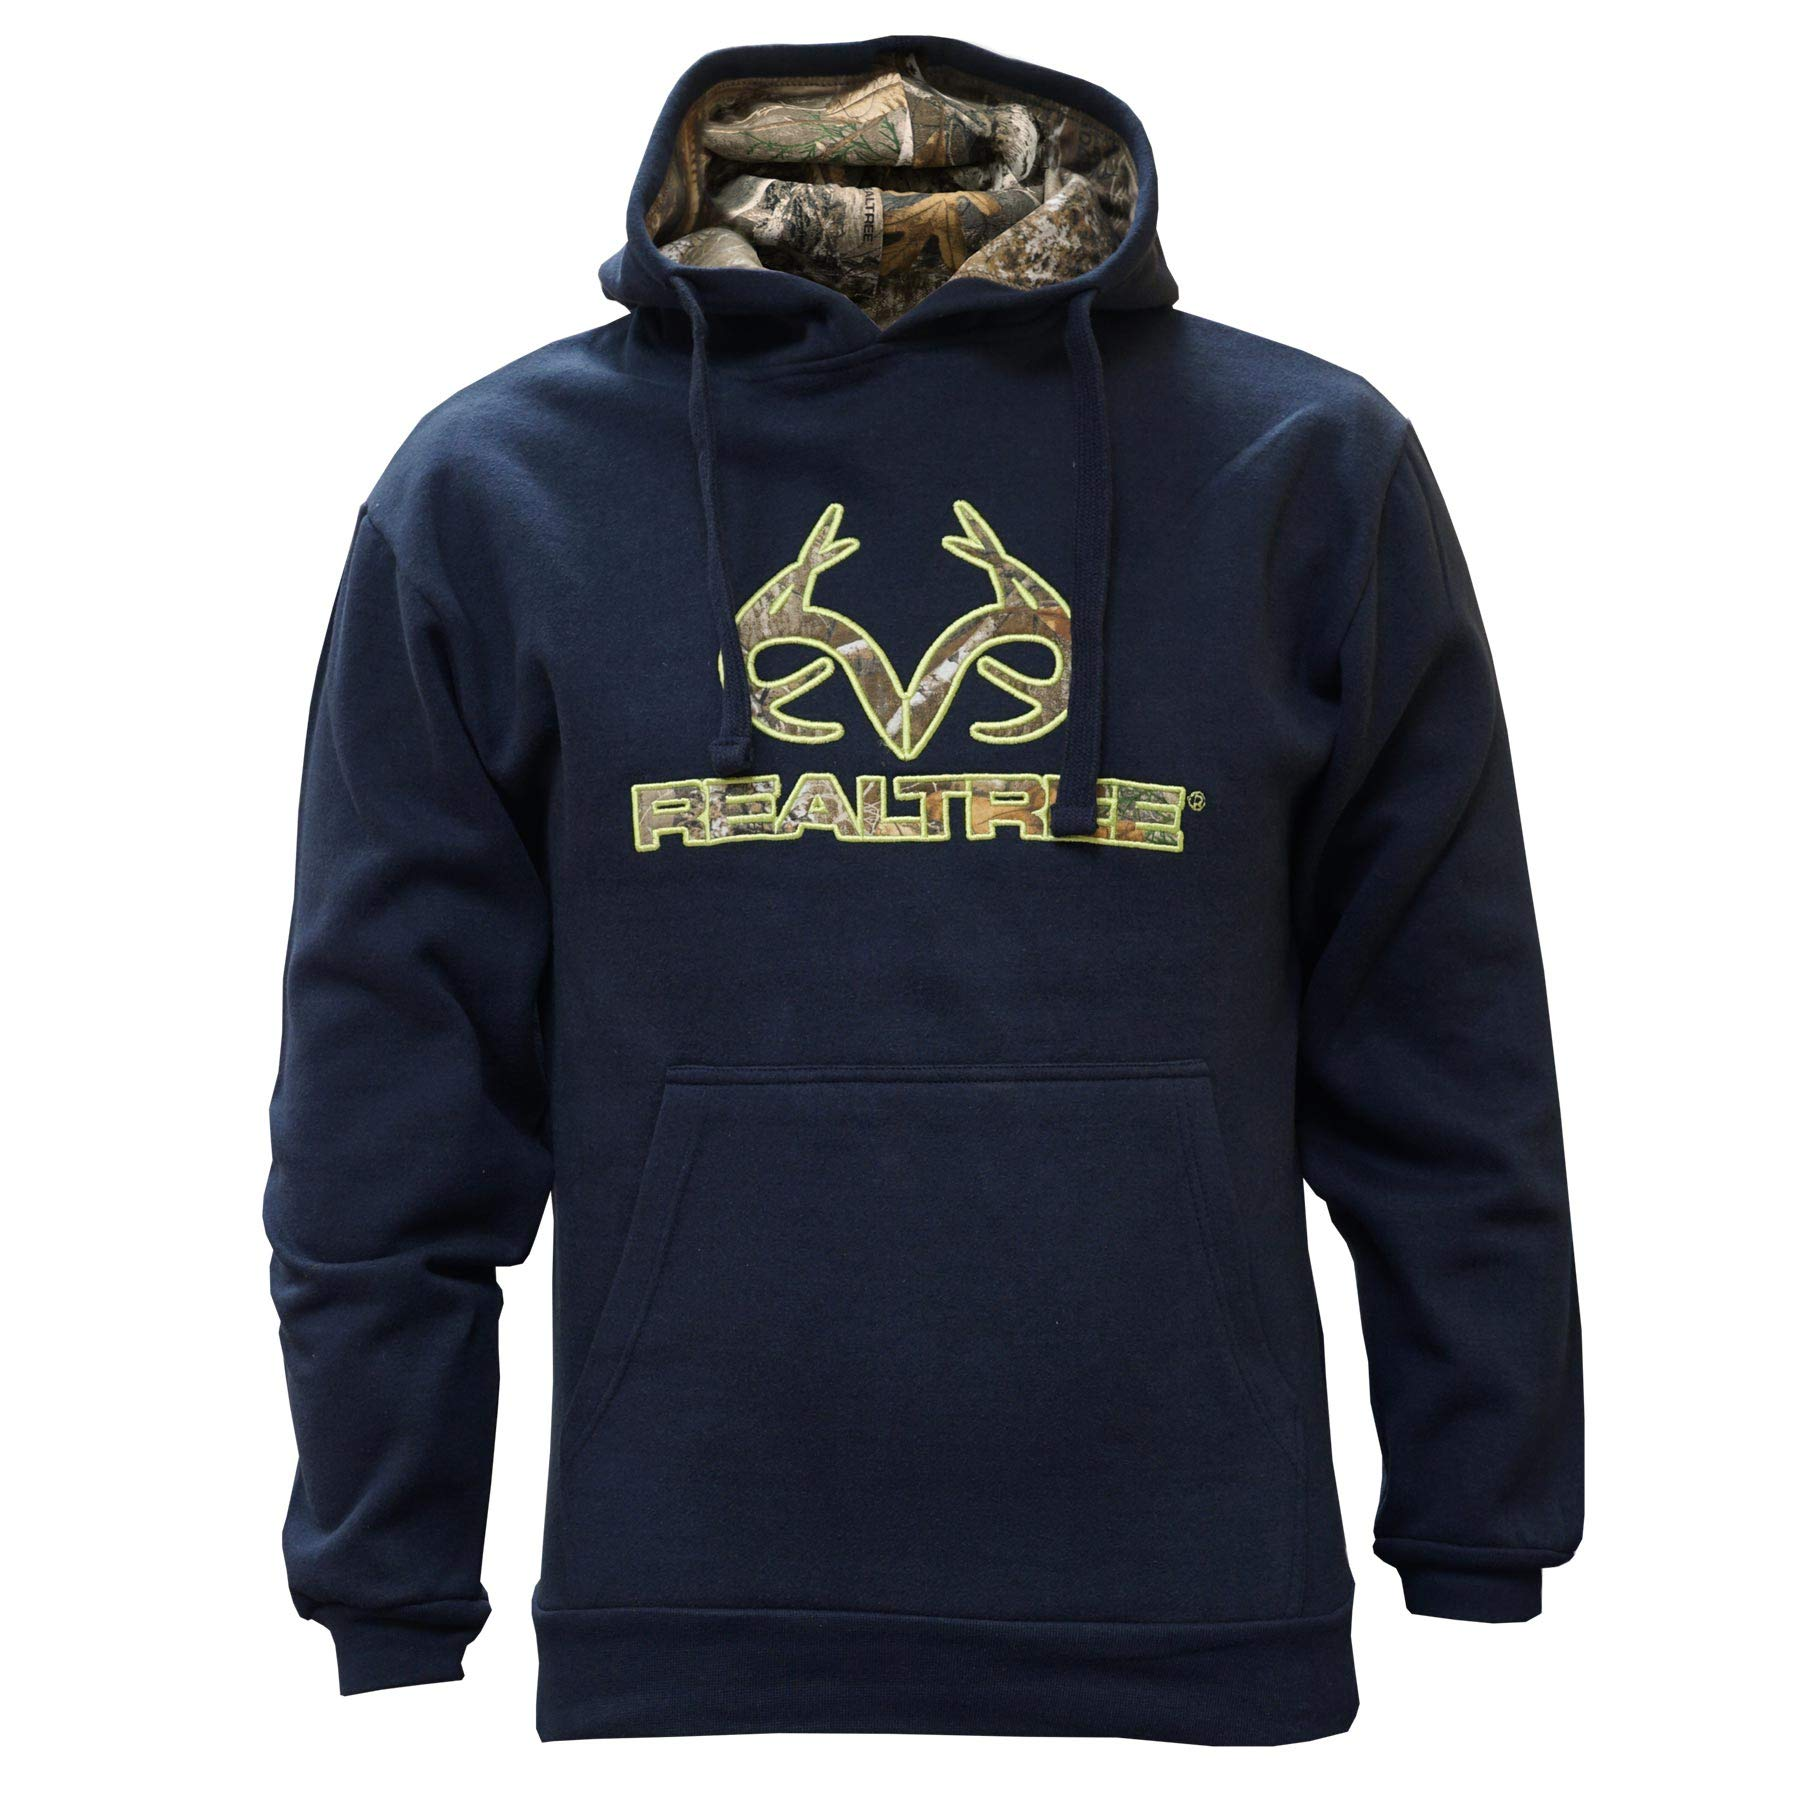 Staghorn Realtree Men's Fleece Applique Hoodie, Airforce Blue, Small